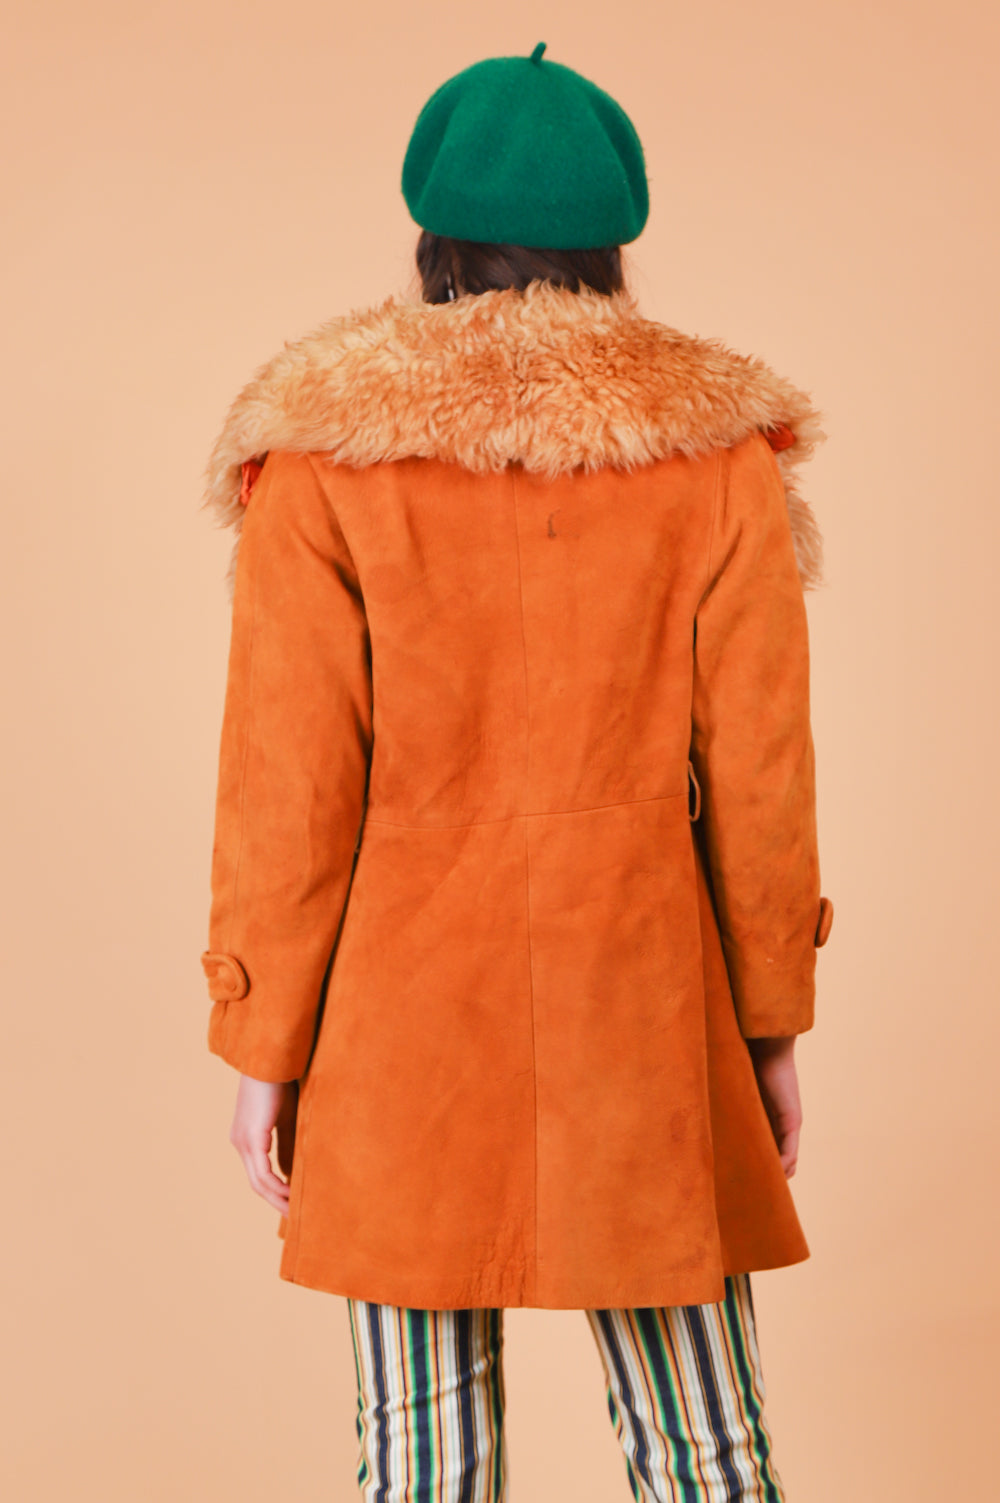 Vintage 1970's Sister Golden Hair Suede Fur Coat